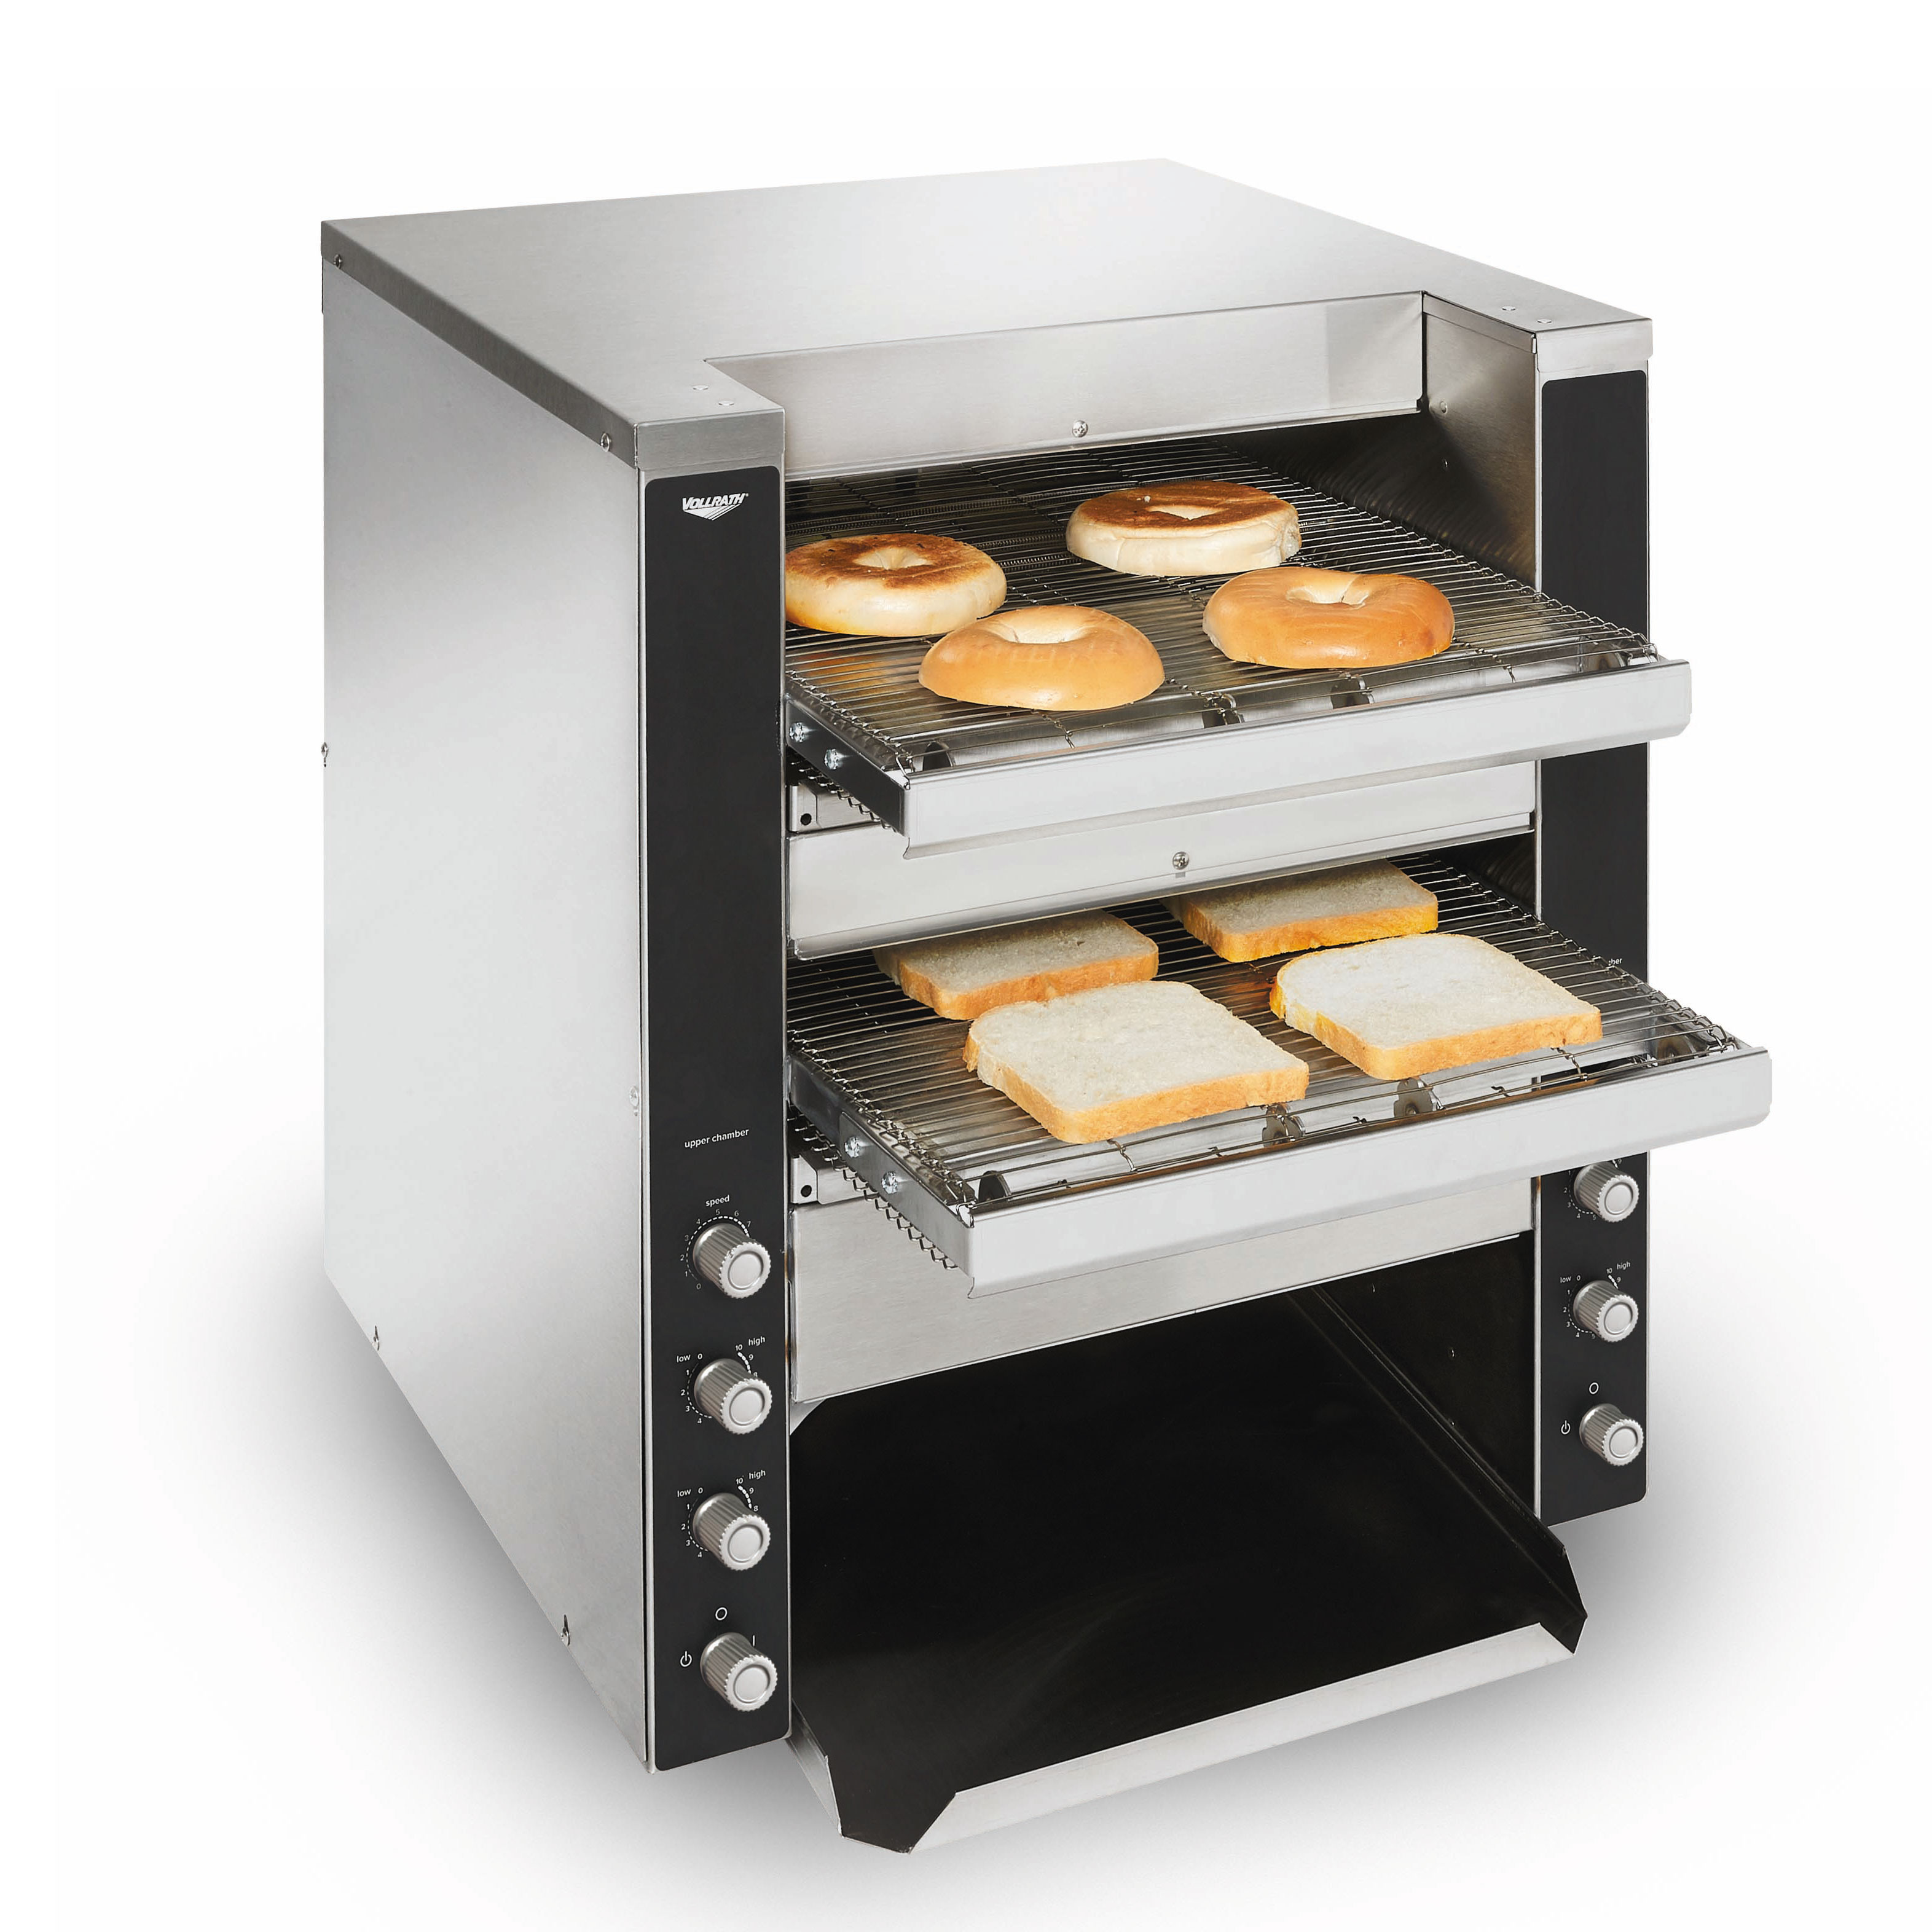 Vollrath CT4-240DUAL toaster, conveyor type